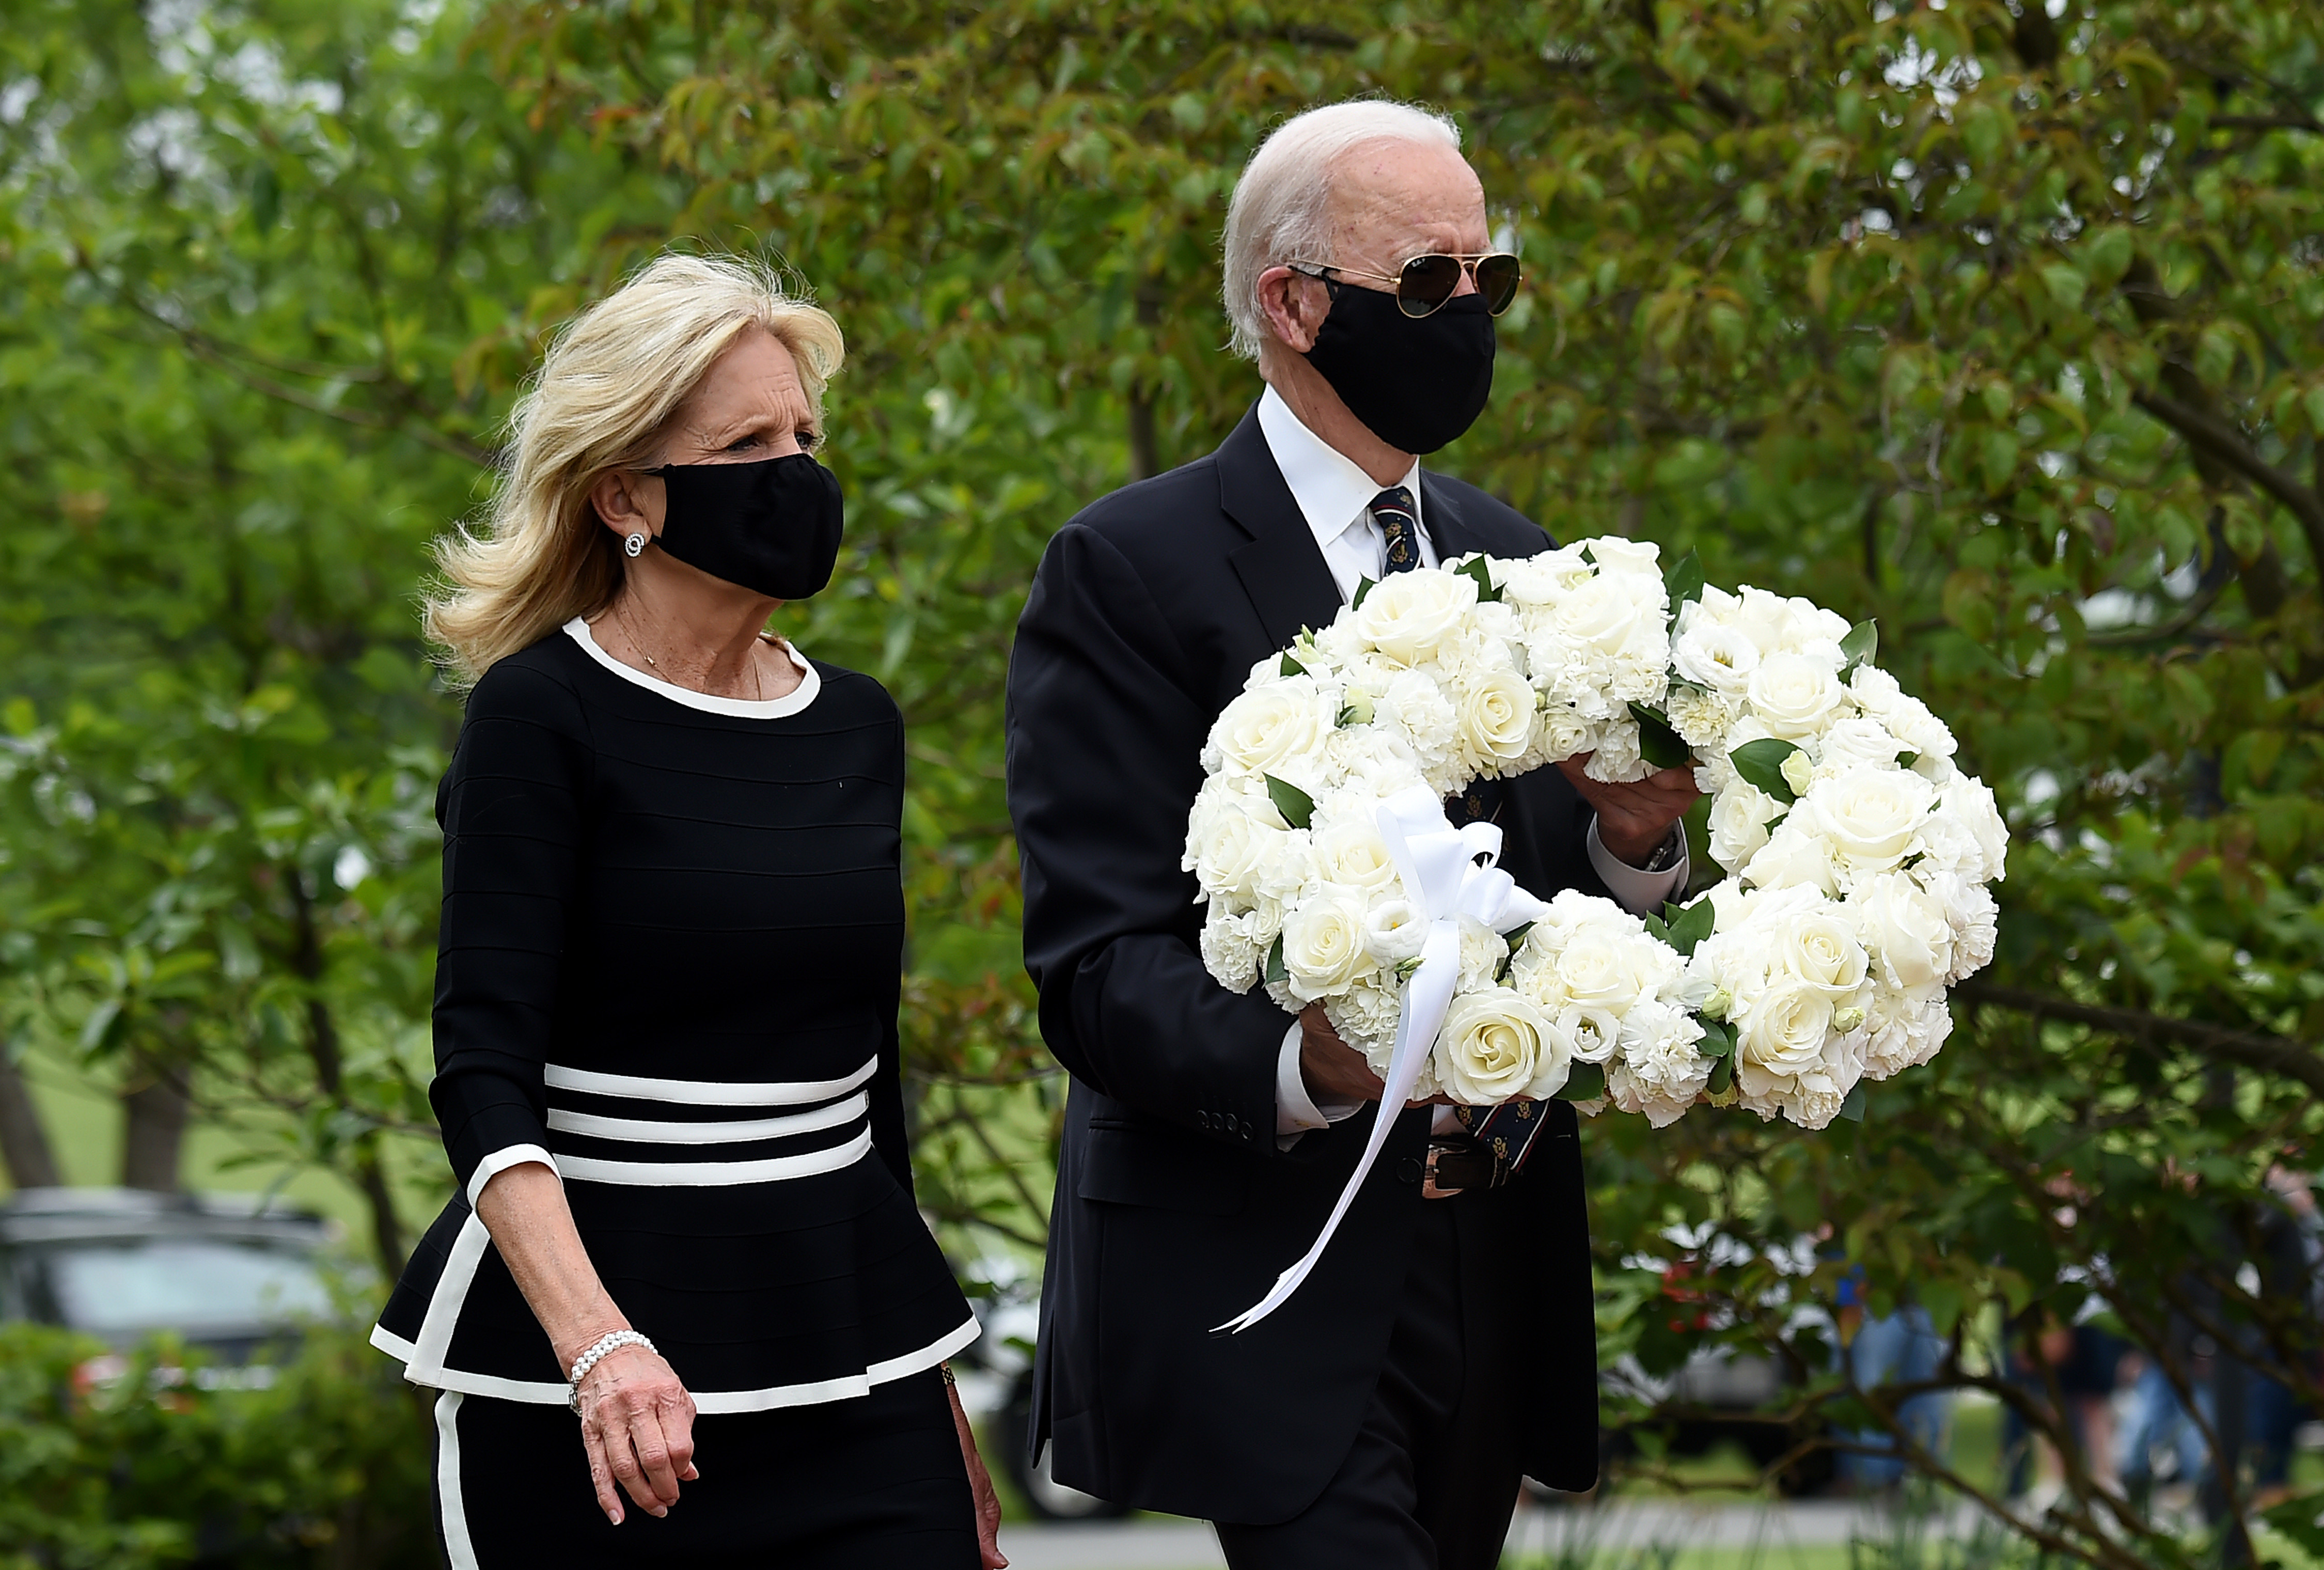 Democratic presidential candidate and former US Vice President Joe Biden with his wife Jill Biden, pay their respects to fallen service members on Memorial Day at Delaware Memorial Bridge Veteran's Memorial Park in Newcastle, Delaware, May 25, 2020. (Photo by OLIVIER DOULIERY/AFP via Getty Images)